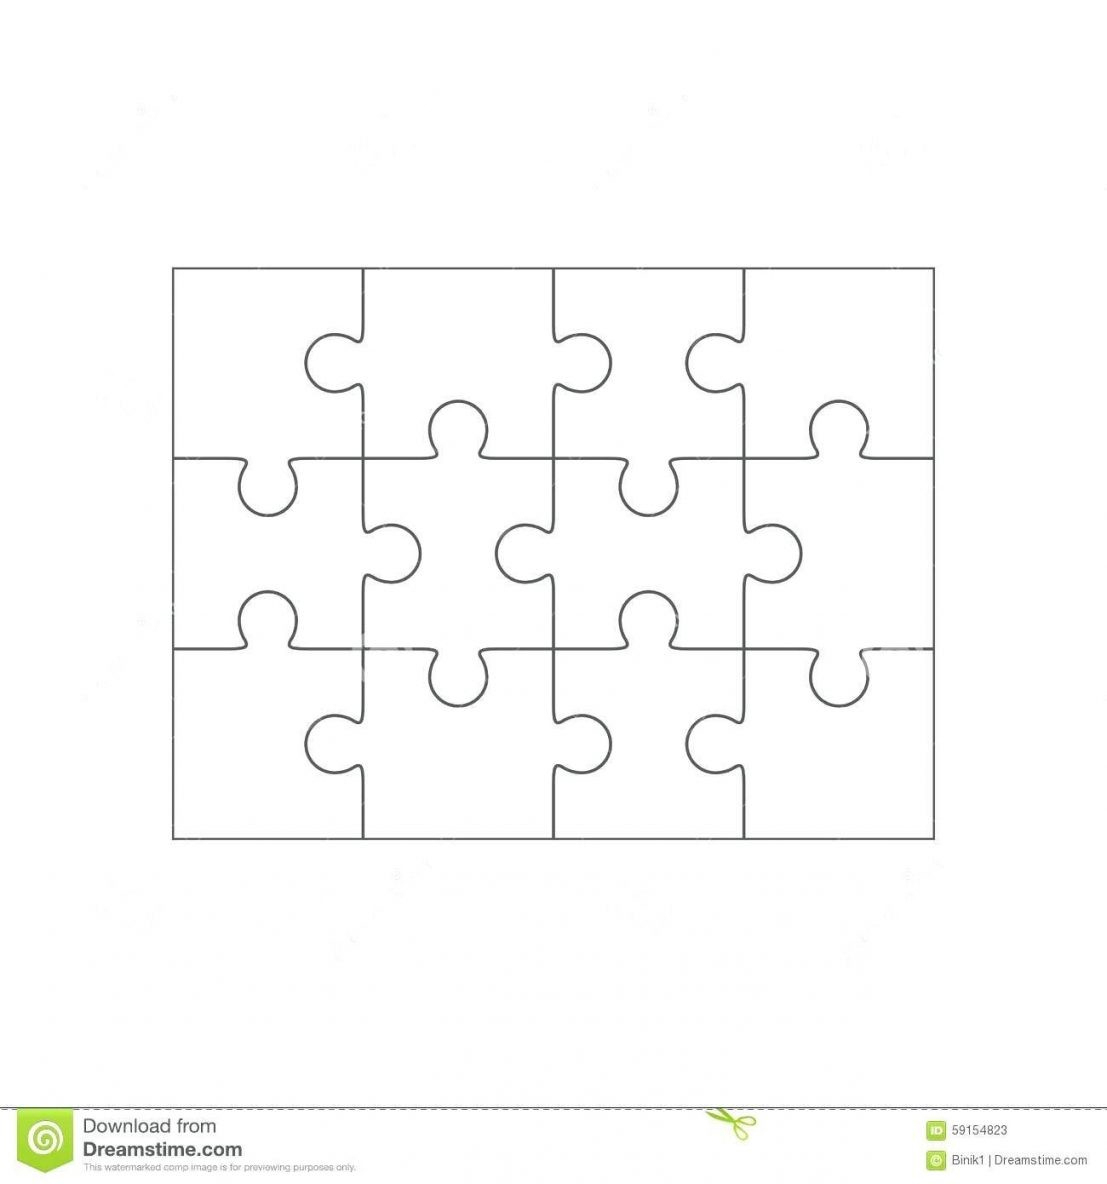 Crossword Puzzle Maker And Word Search Crosswords Printable Jigsaw - Printable Jigsaw Puzzle Maker